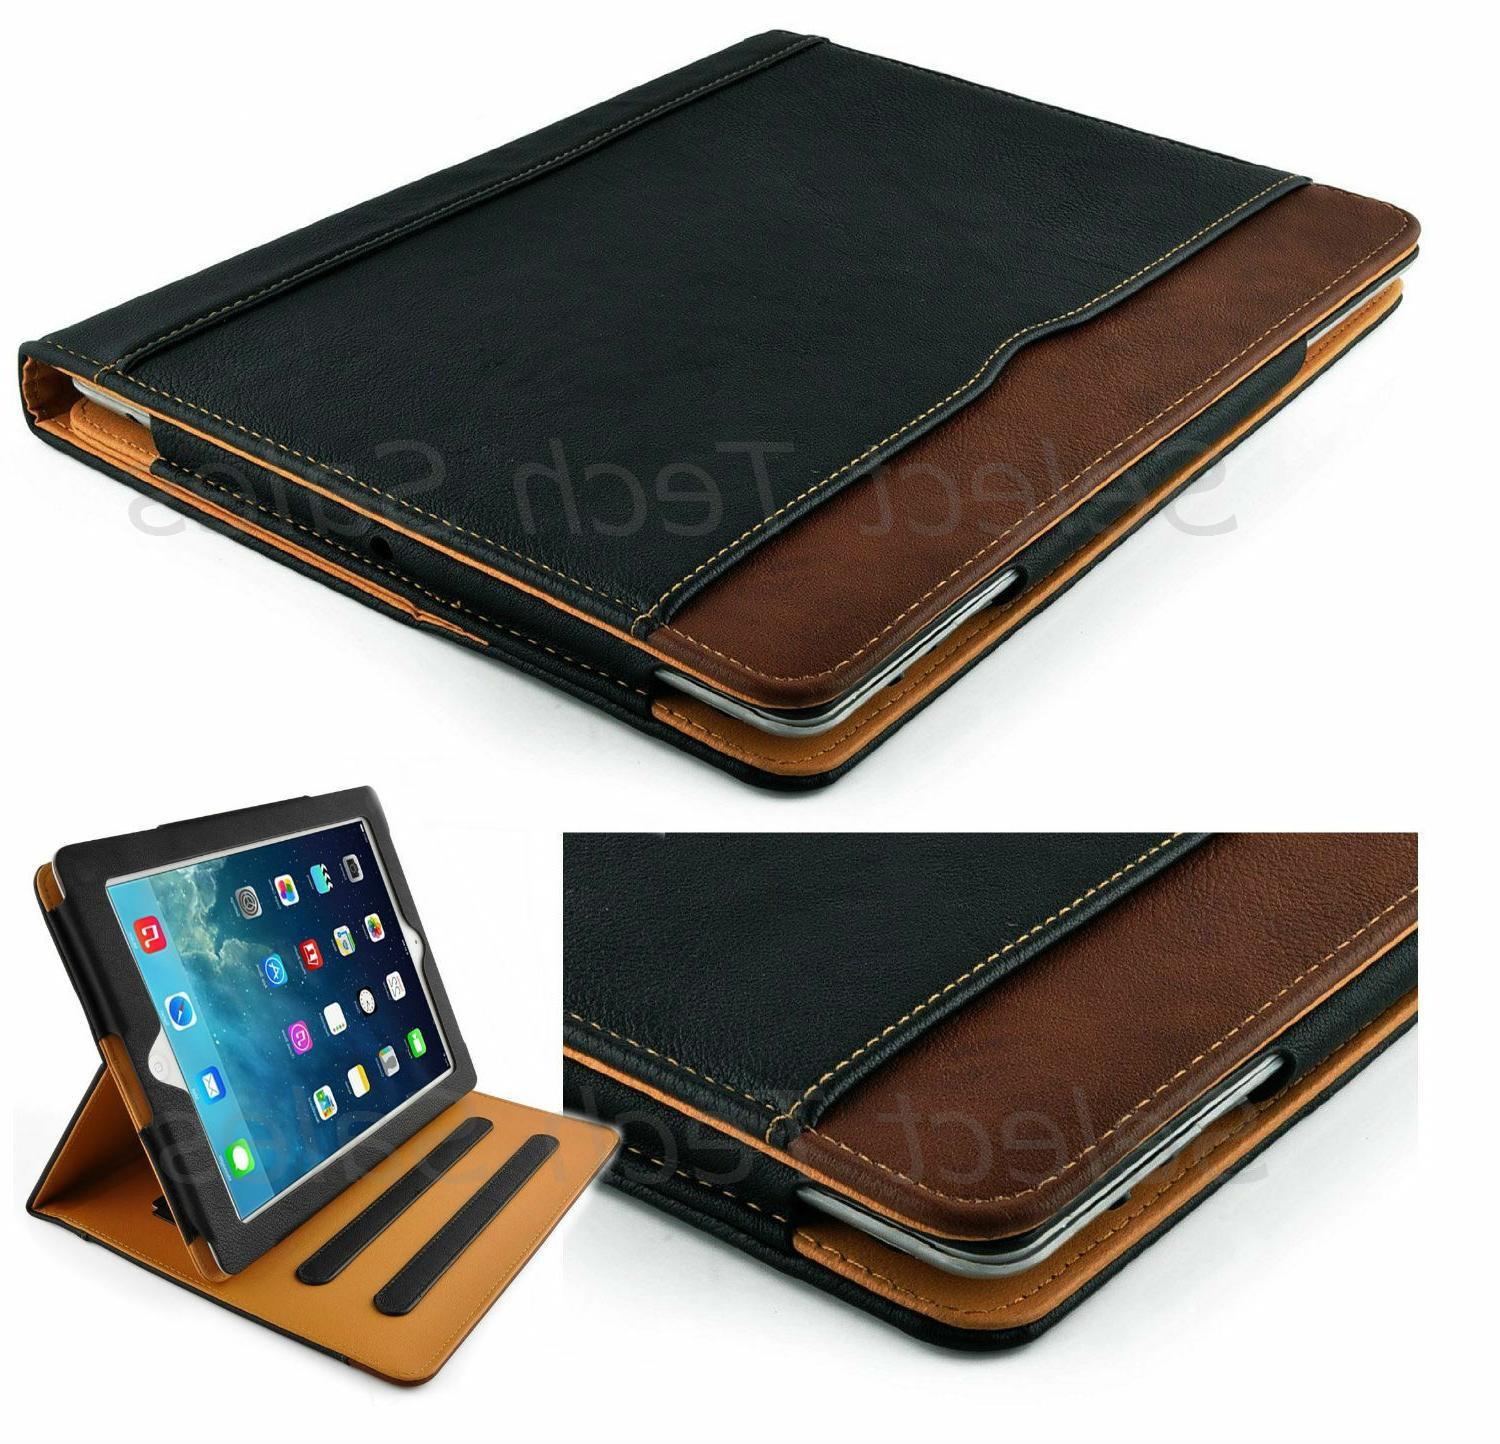 iPad 9.7 6th Generation 2018 Soft Leather Smart Cover Case S